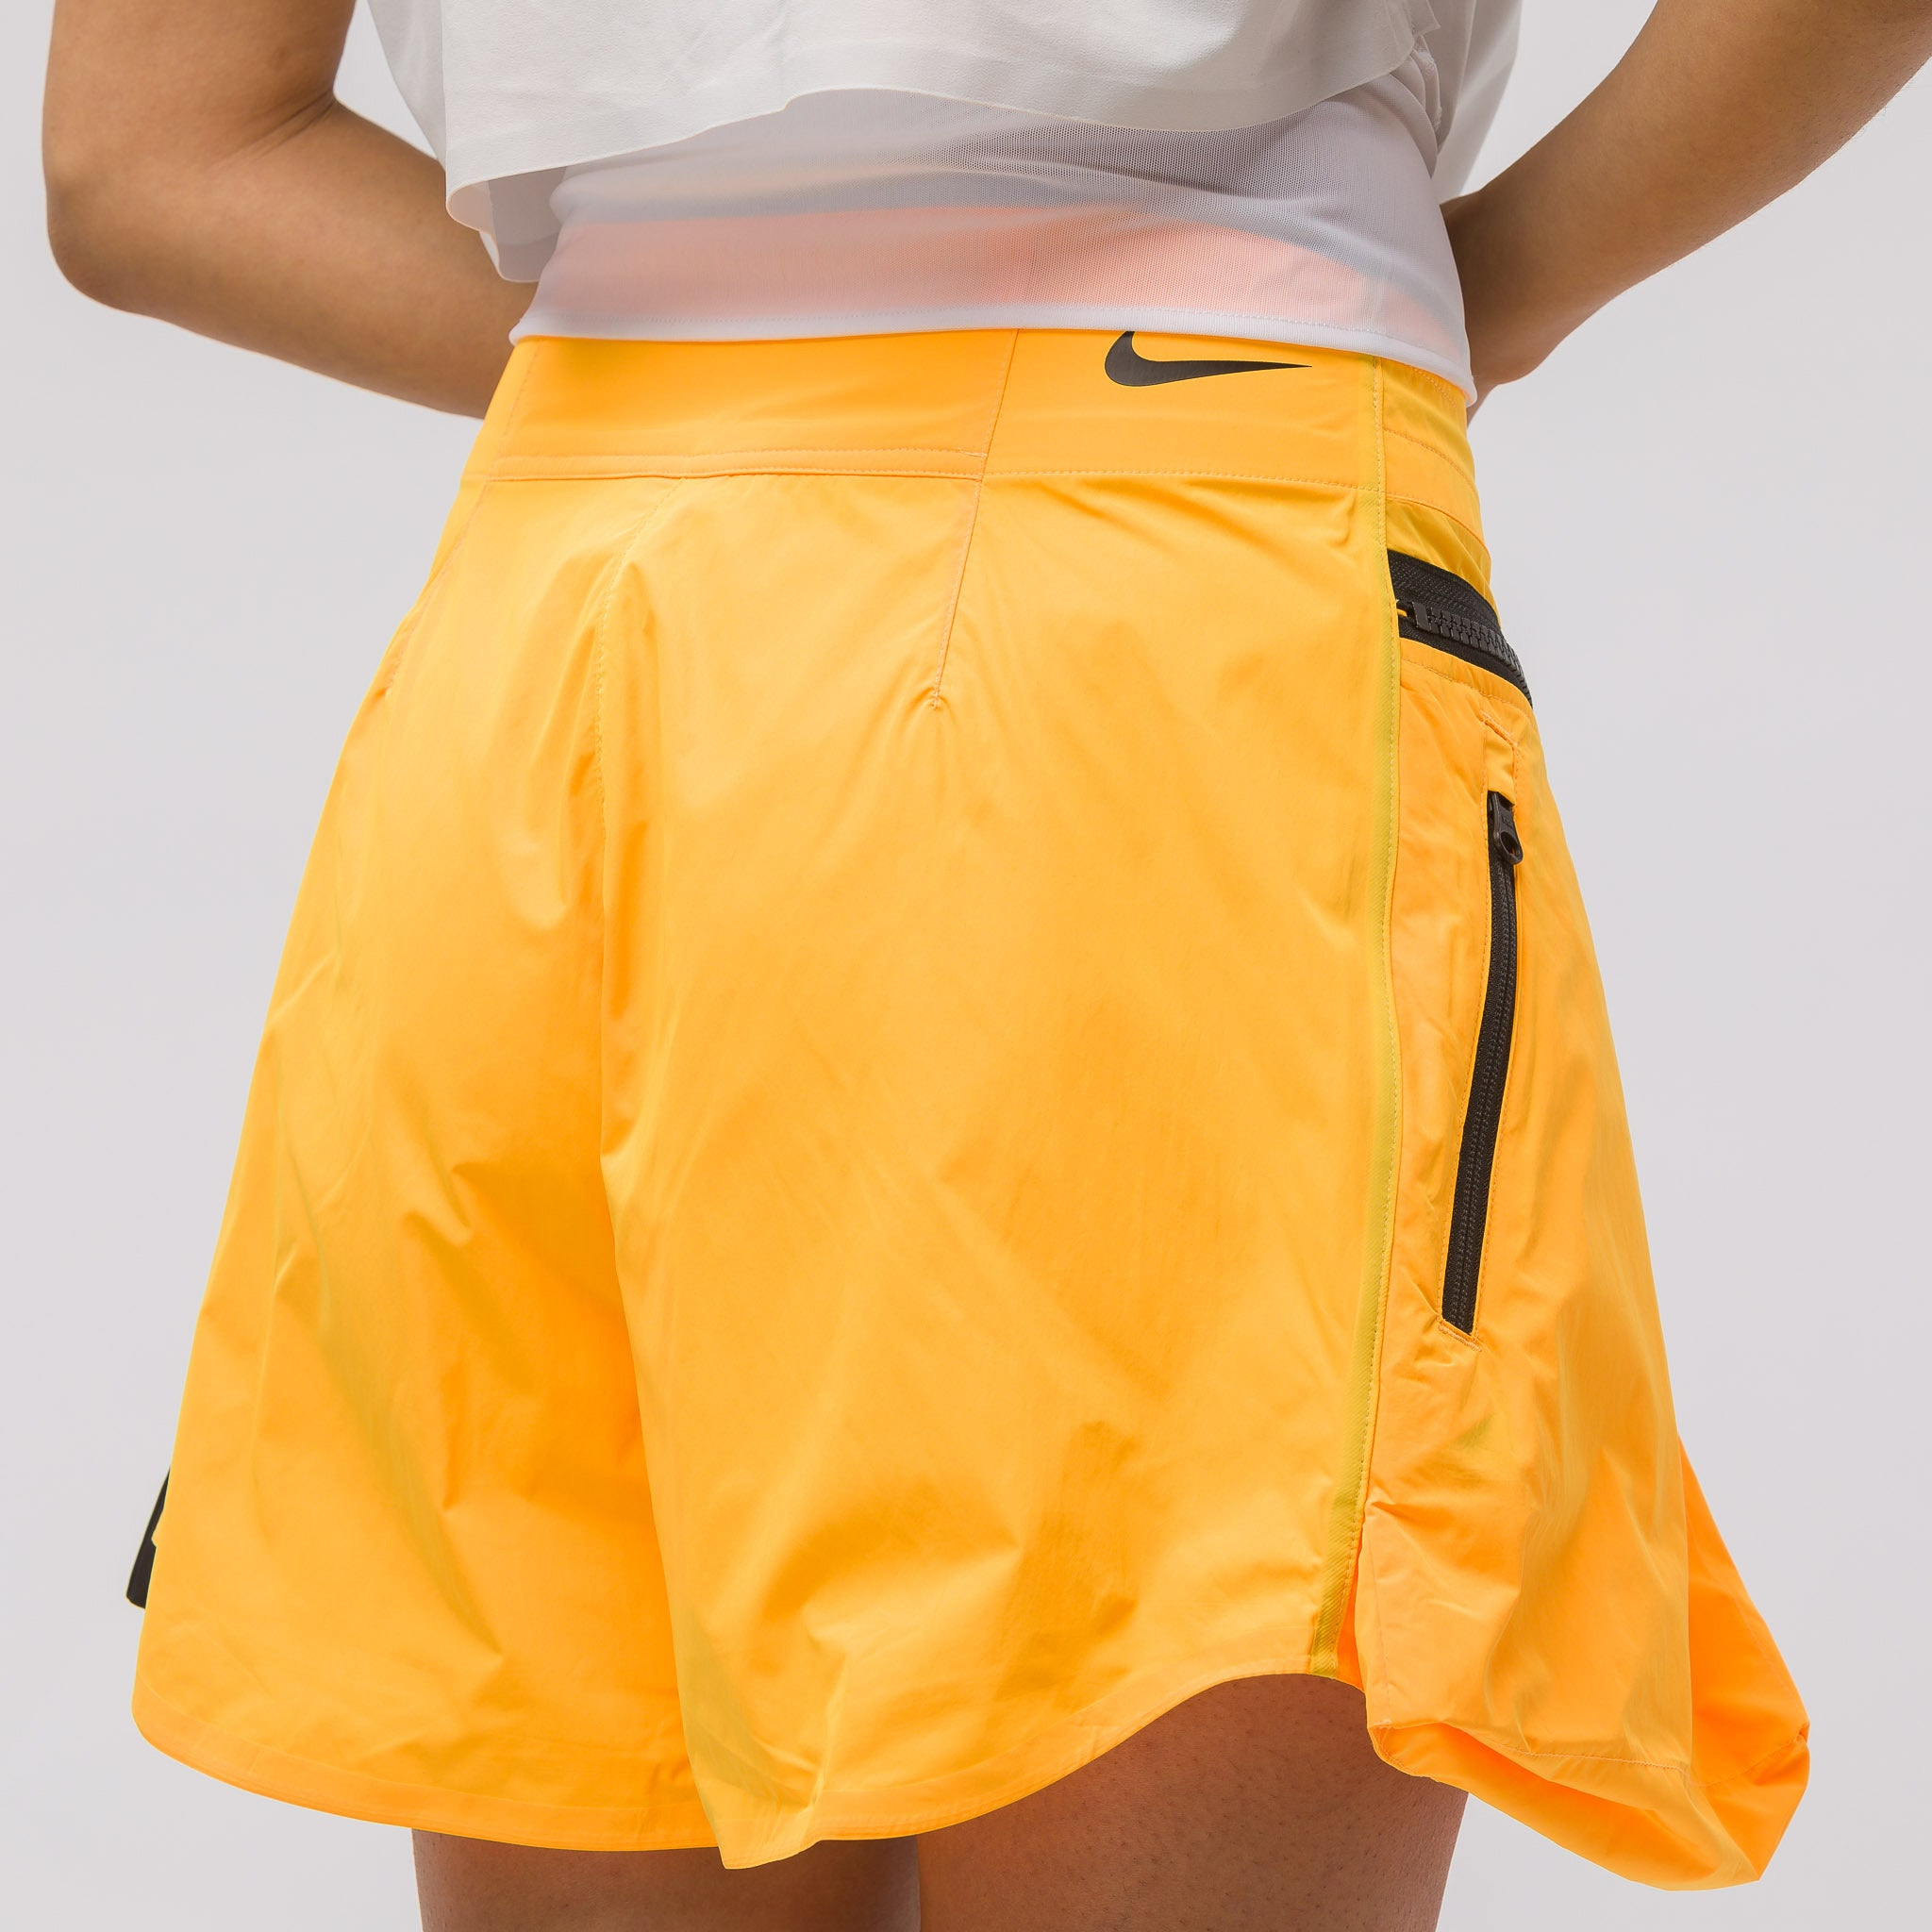 Women's ACG Short in Orange/Grey